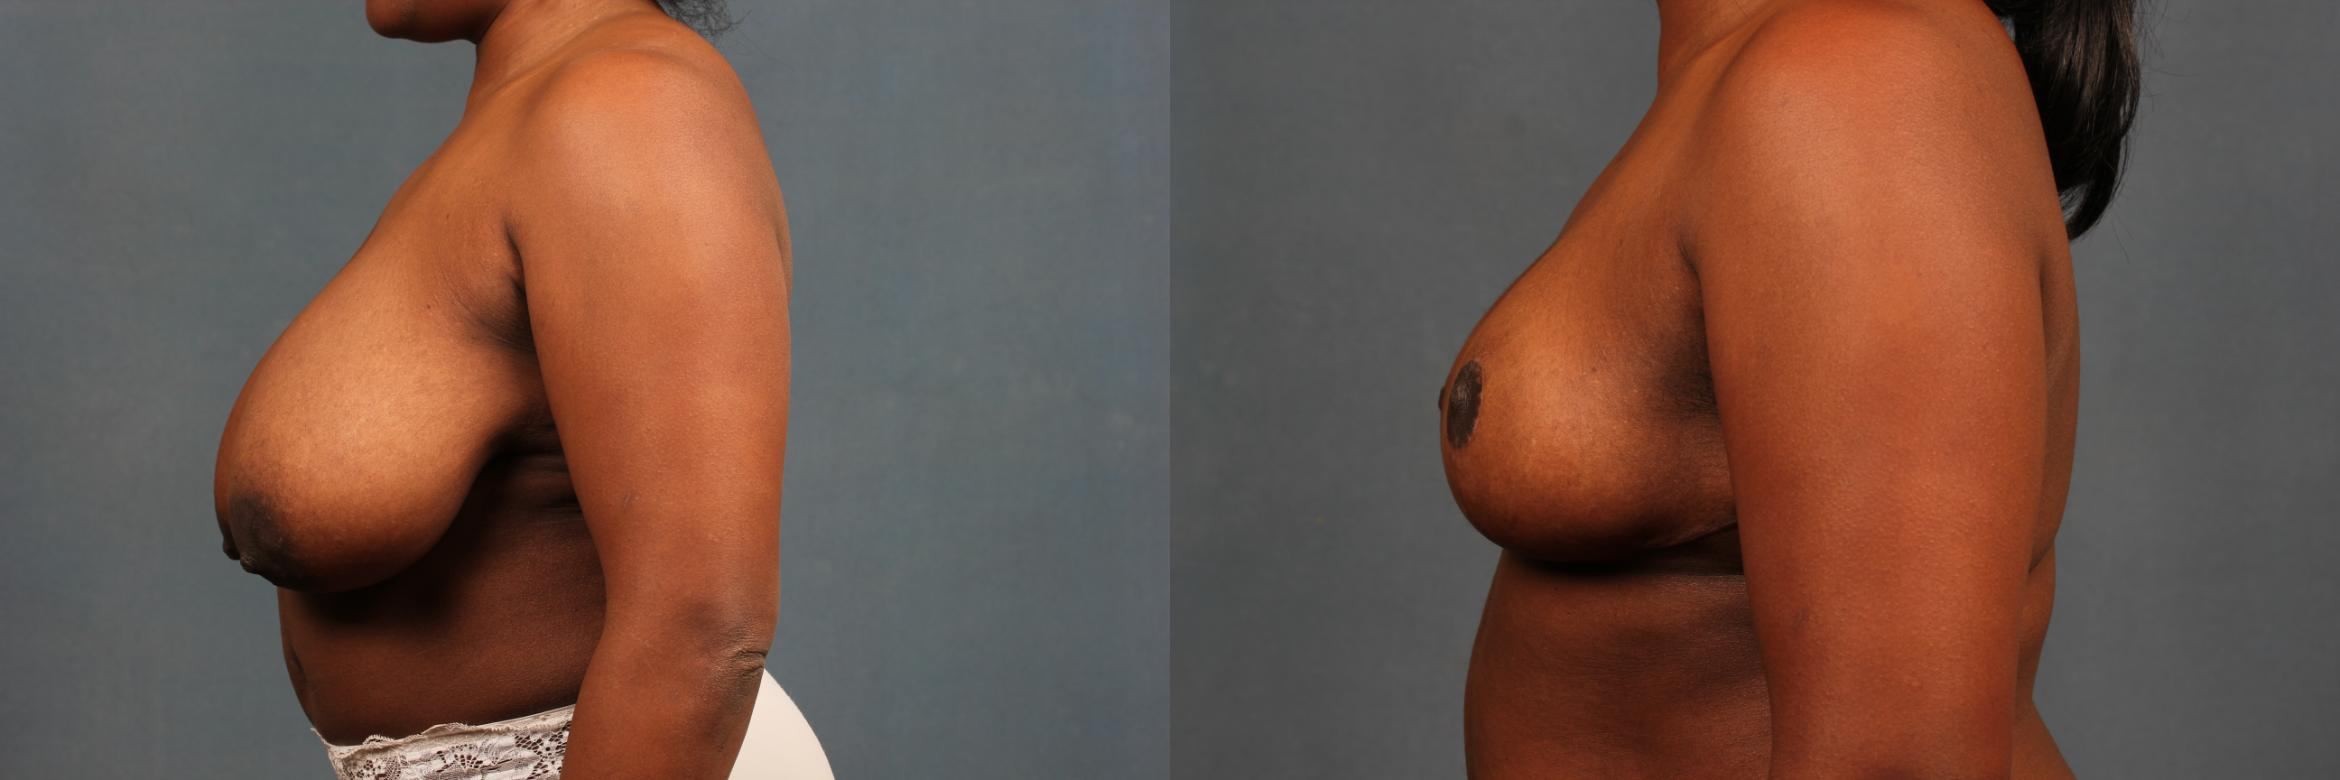 Reduction Case 449 Before & After View #3 | Louisville & Lexington, KY | CaloAesthetics® Plastic Surgery Center